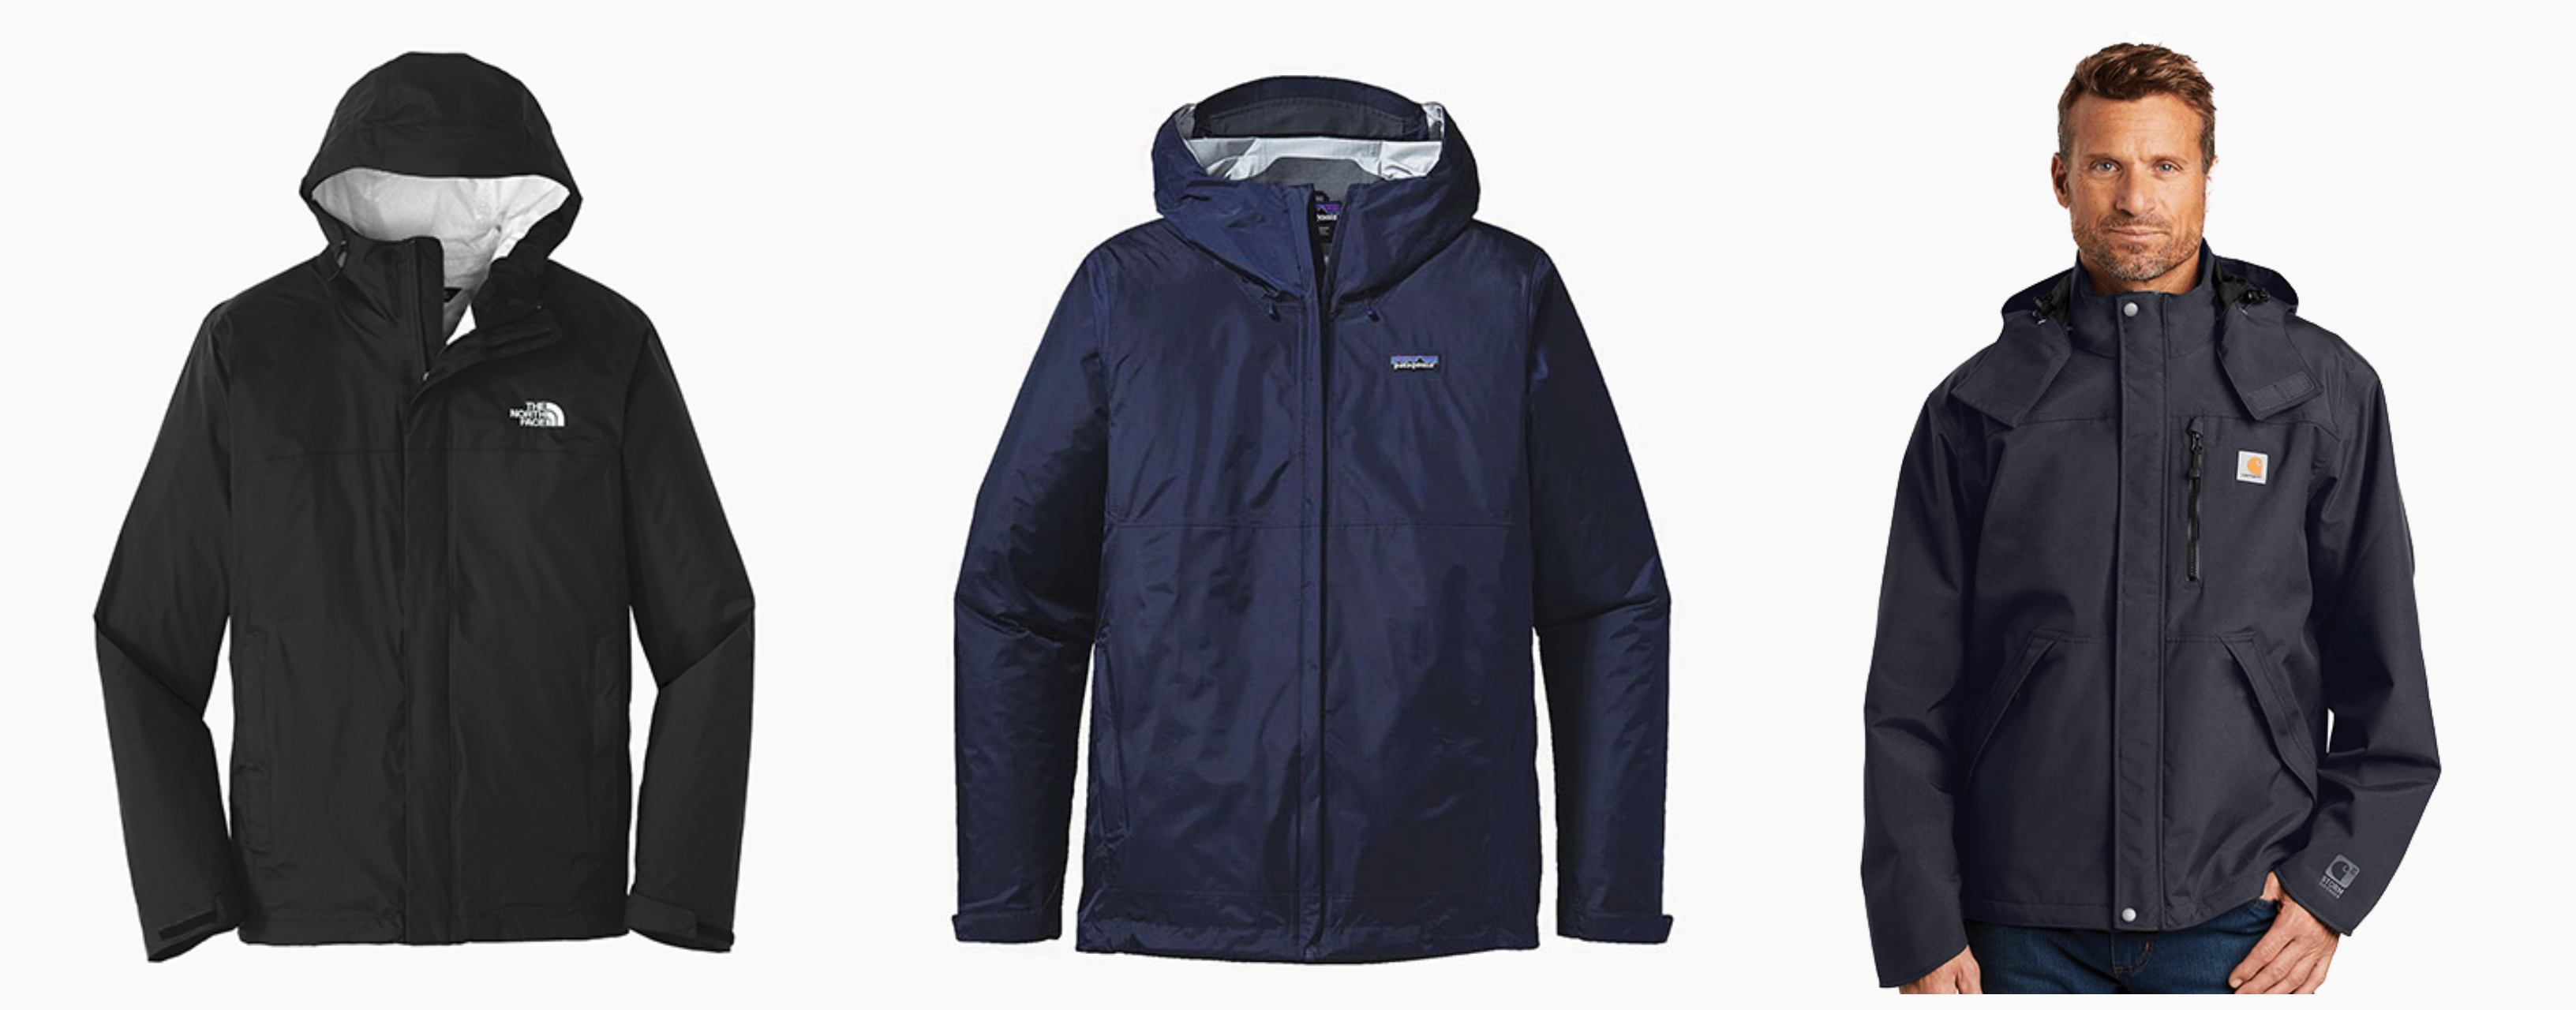 The NorthFace DryVent Rain Jacket, Patagonia Torrentshell Jacket, Carhartt Shoreline Jacket‍